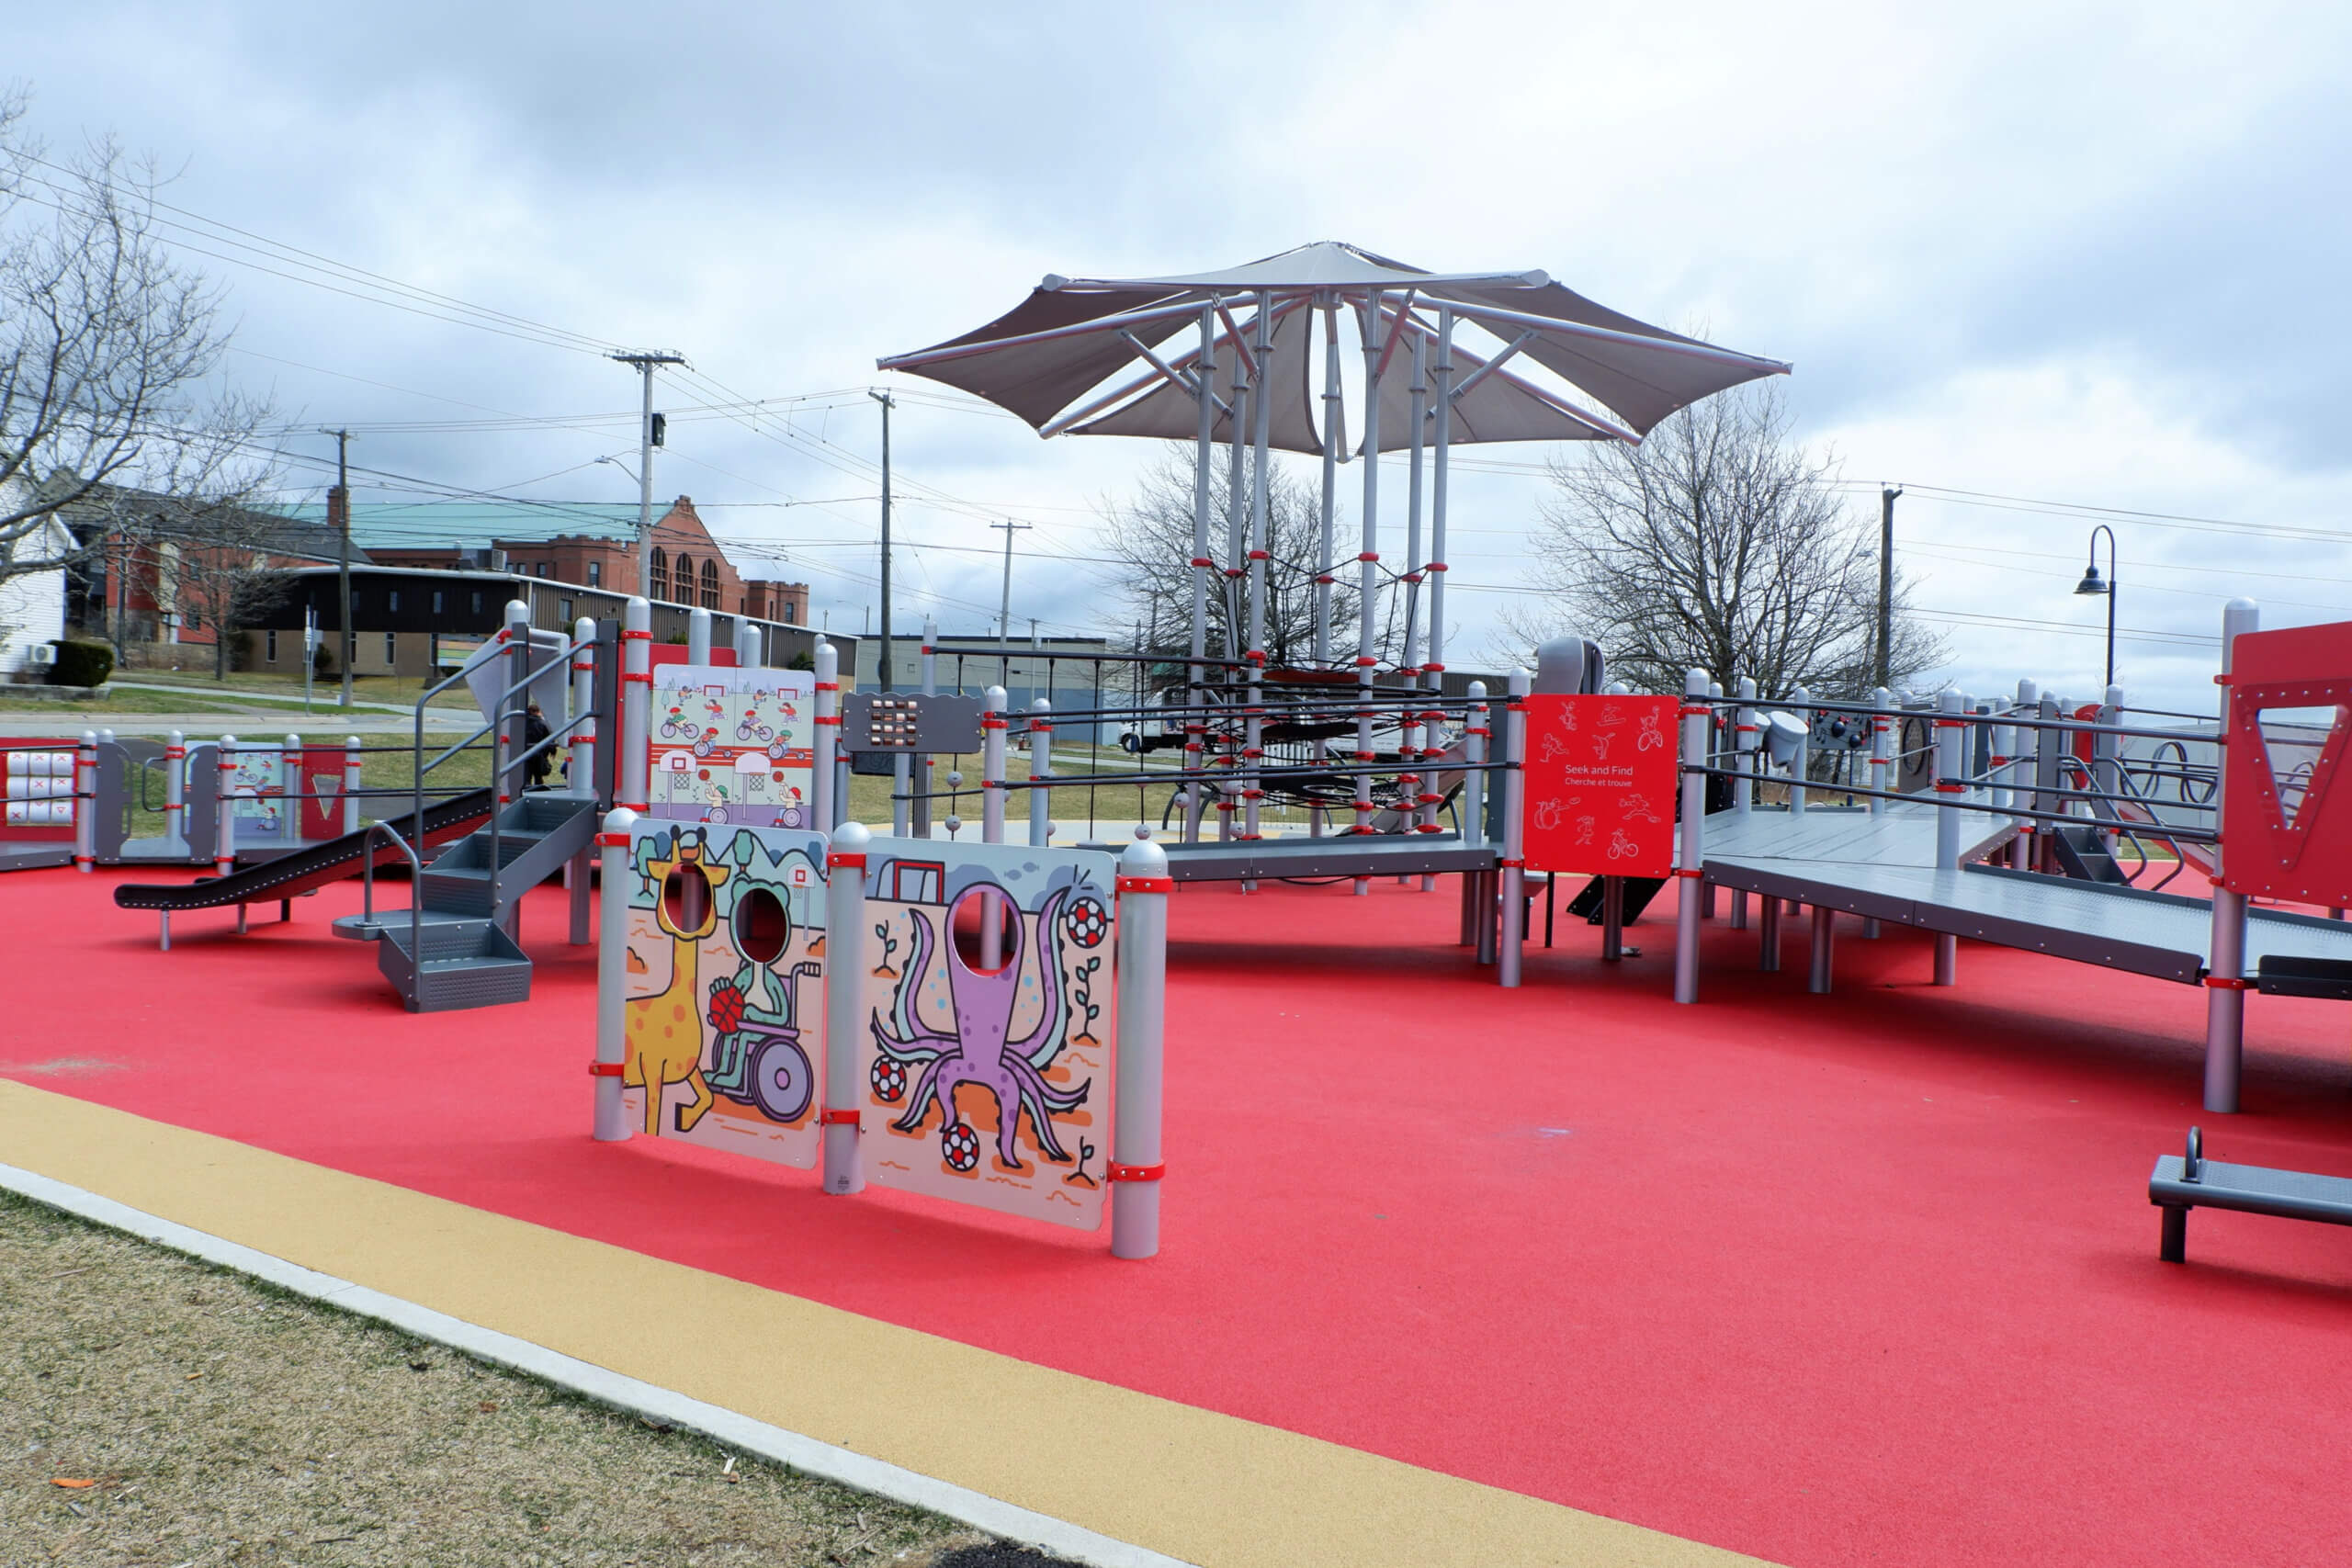 saint john rainbow park accessible inclusive playground wide ramps rubberized ground things to explore with kids pickle planet